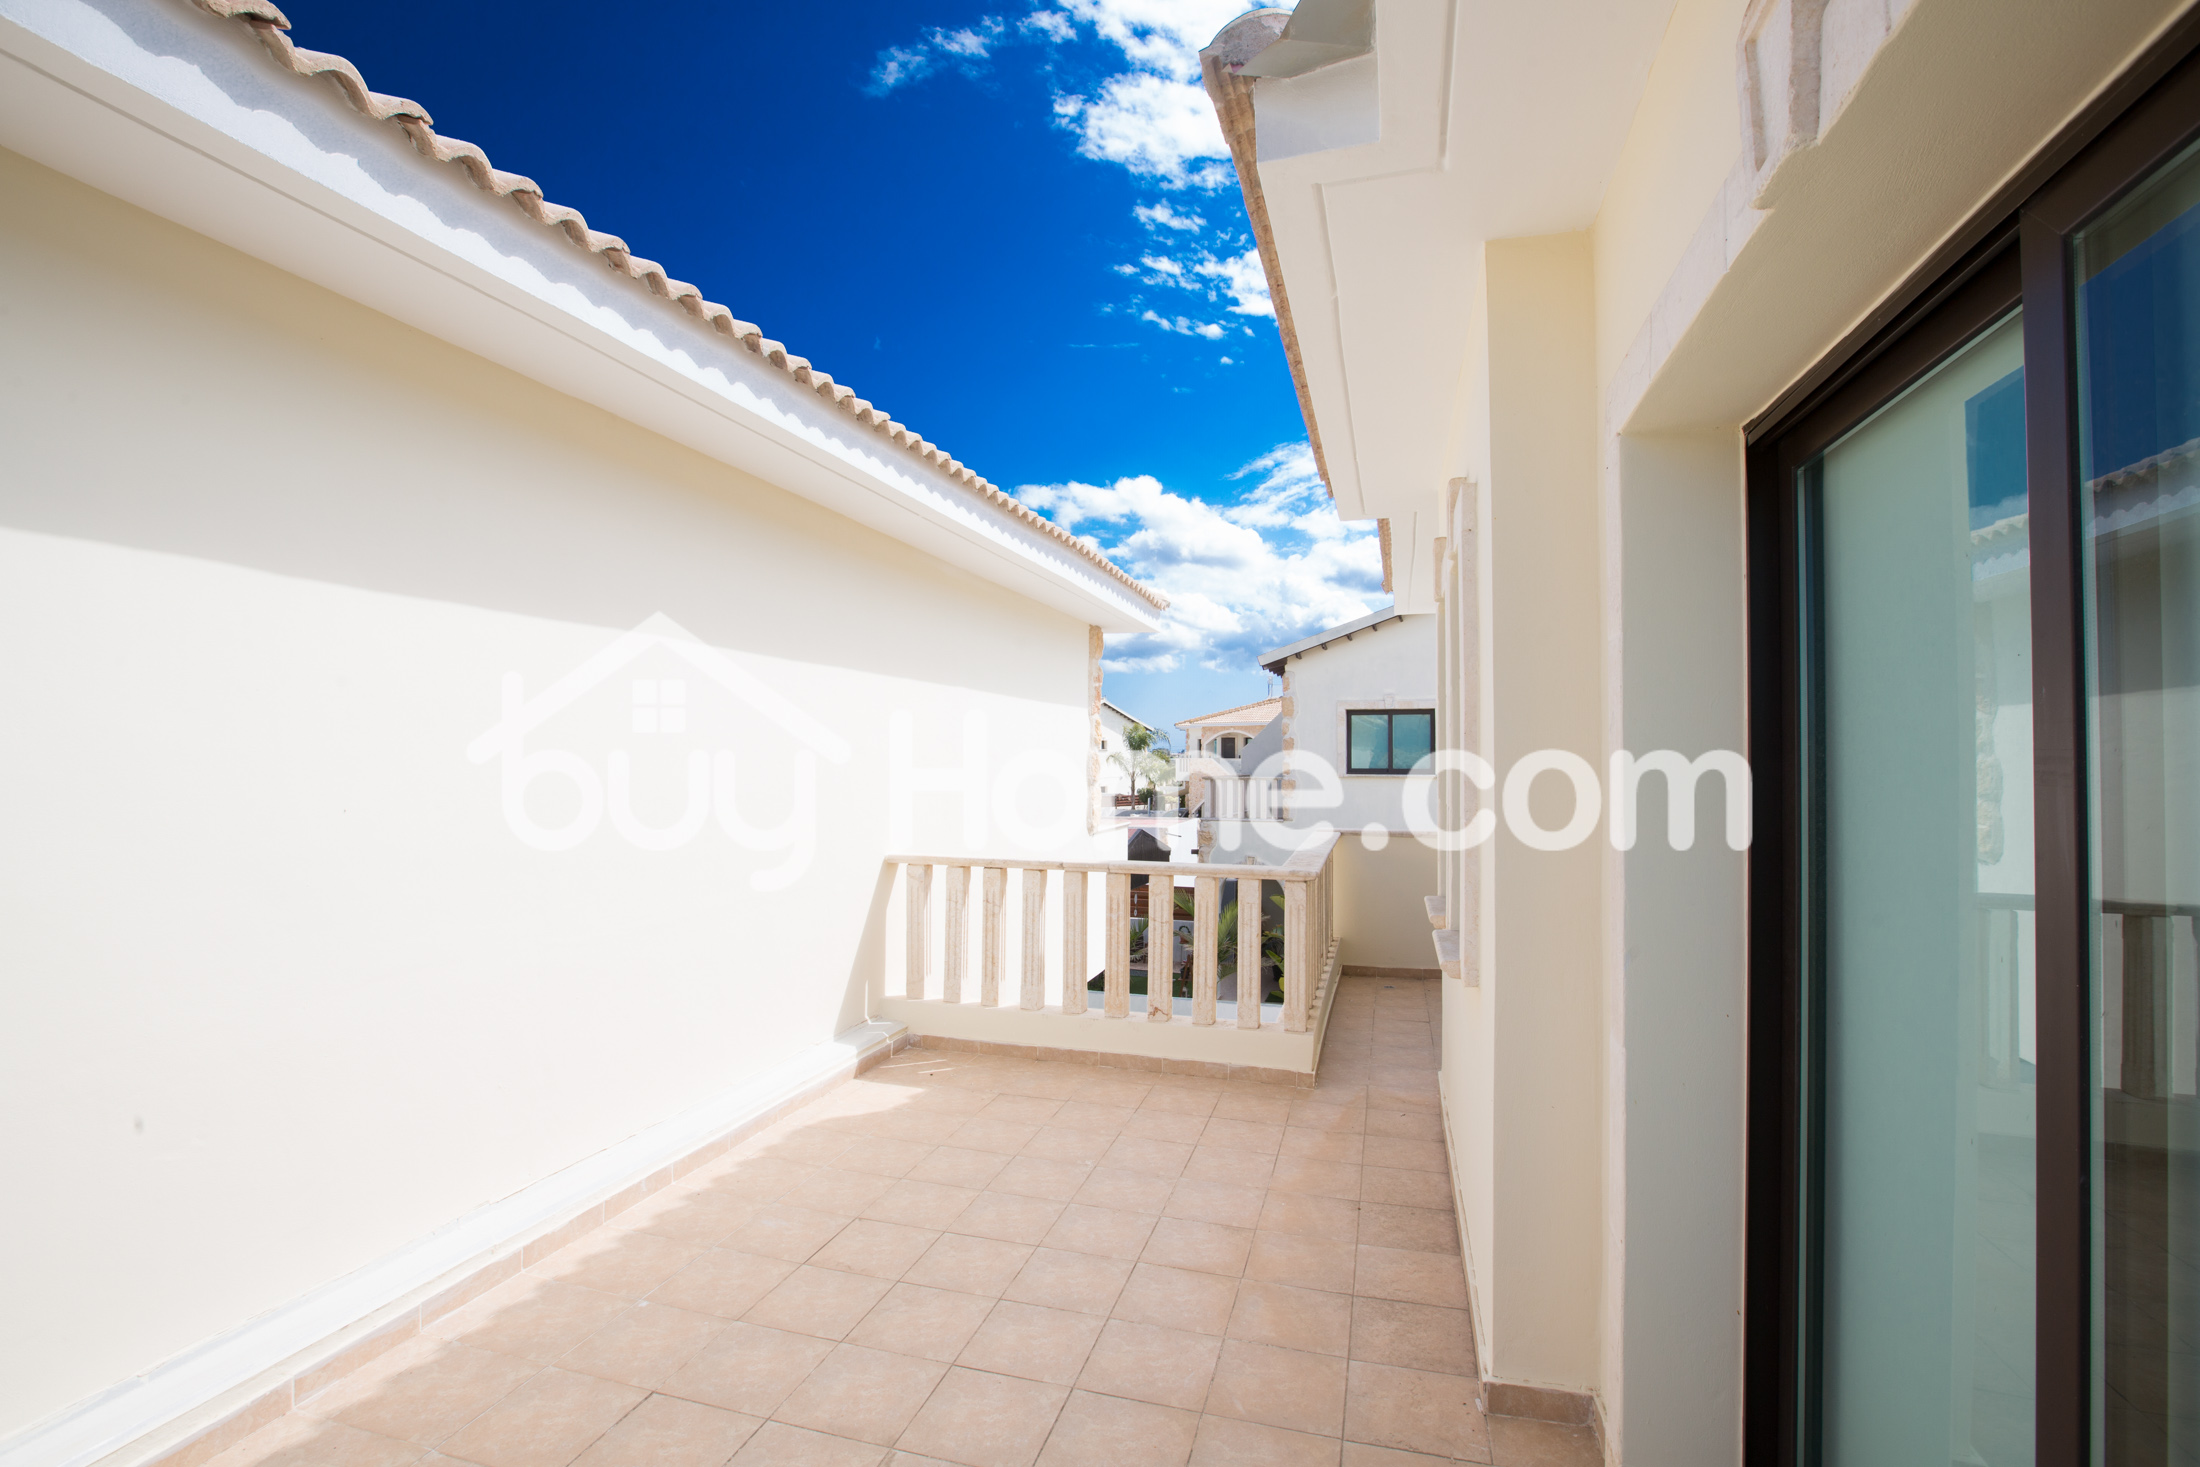 3 Bedroom Houses | BuyHome